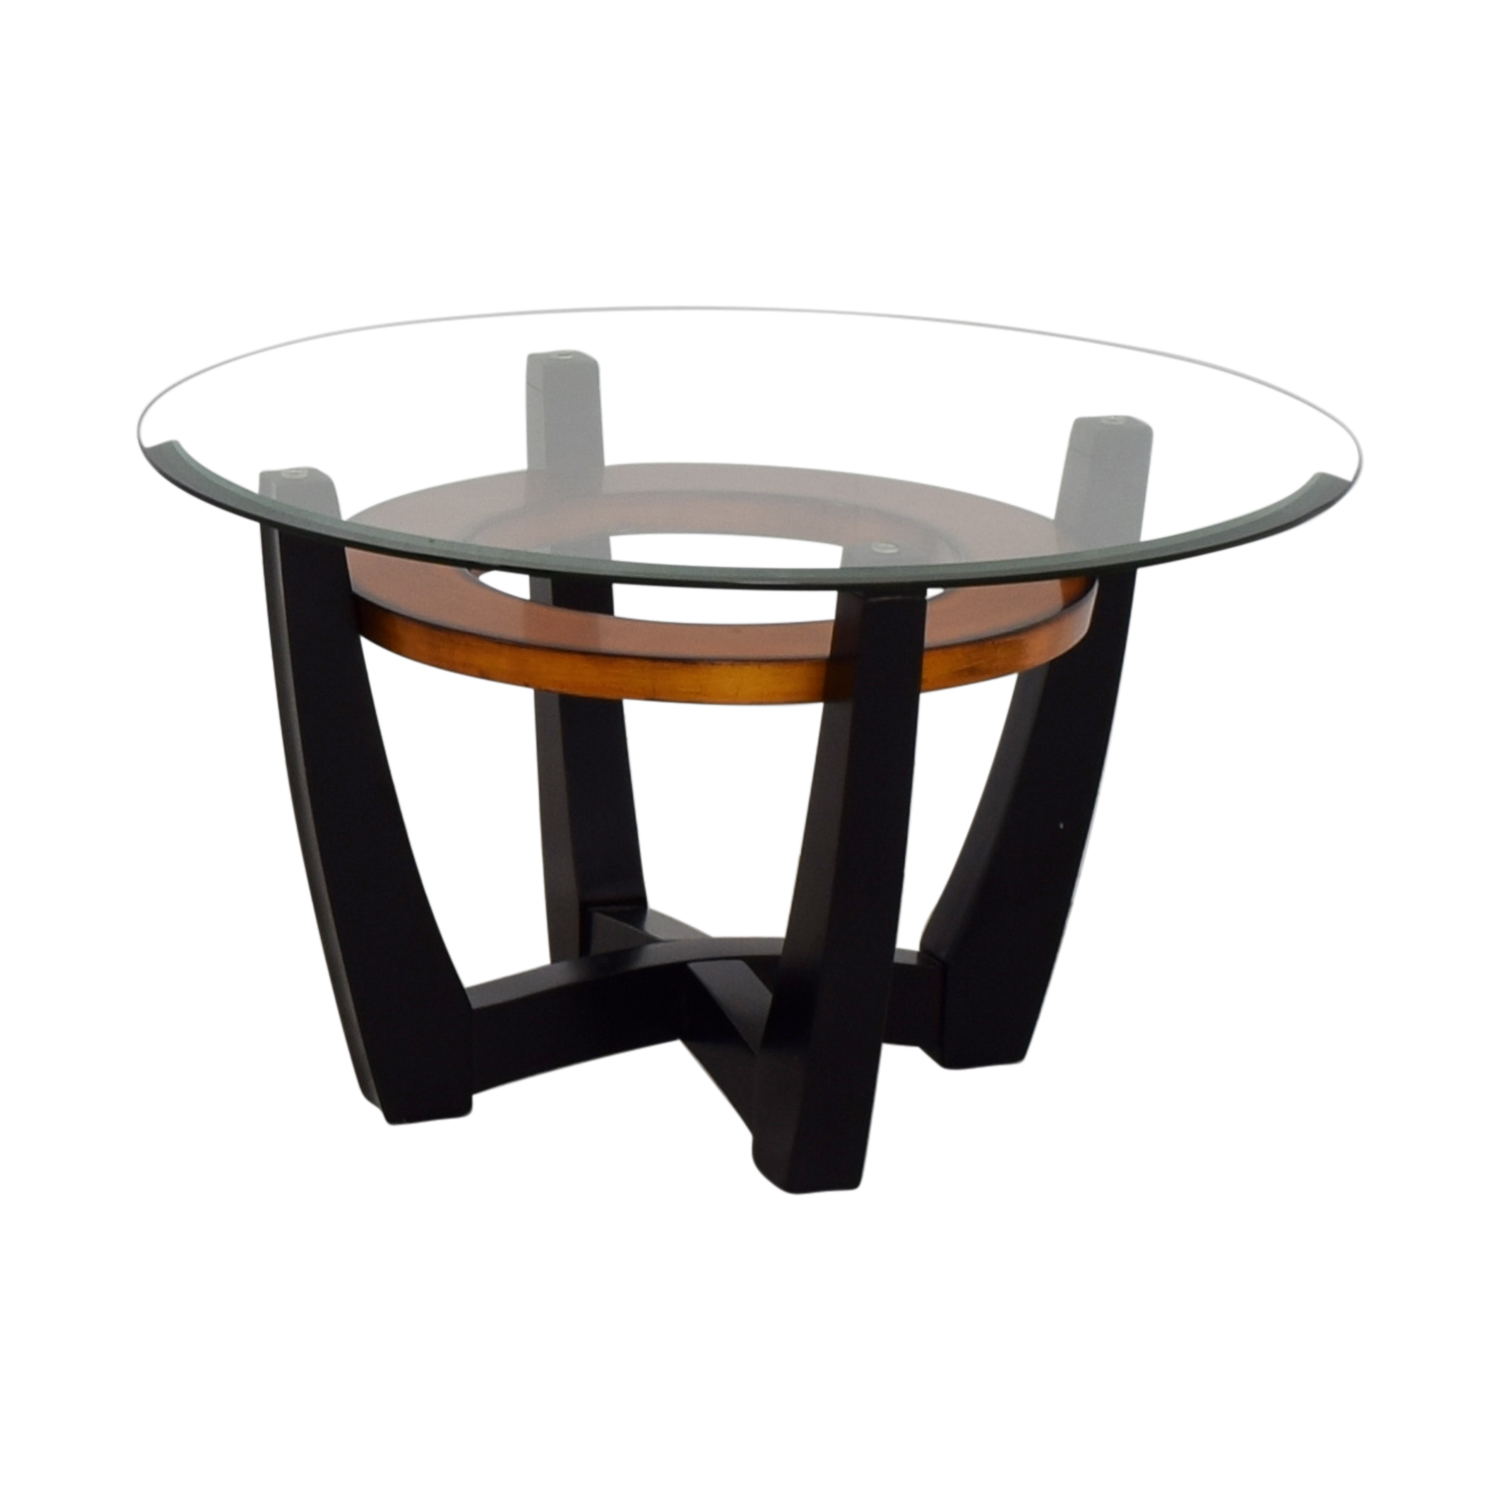 84% OFF - Macy's Elation Round Glass & Wood Coffee Table ...